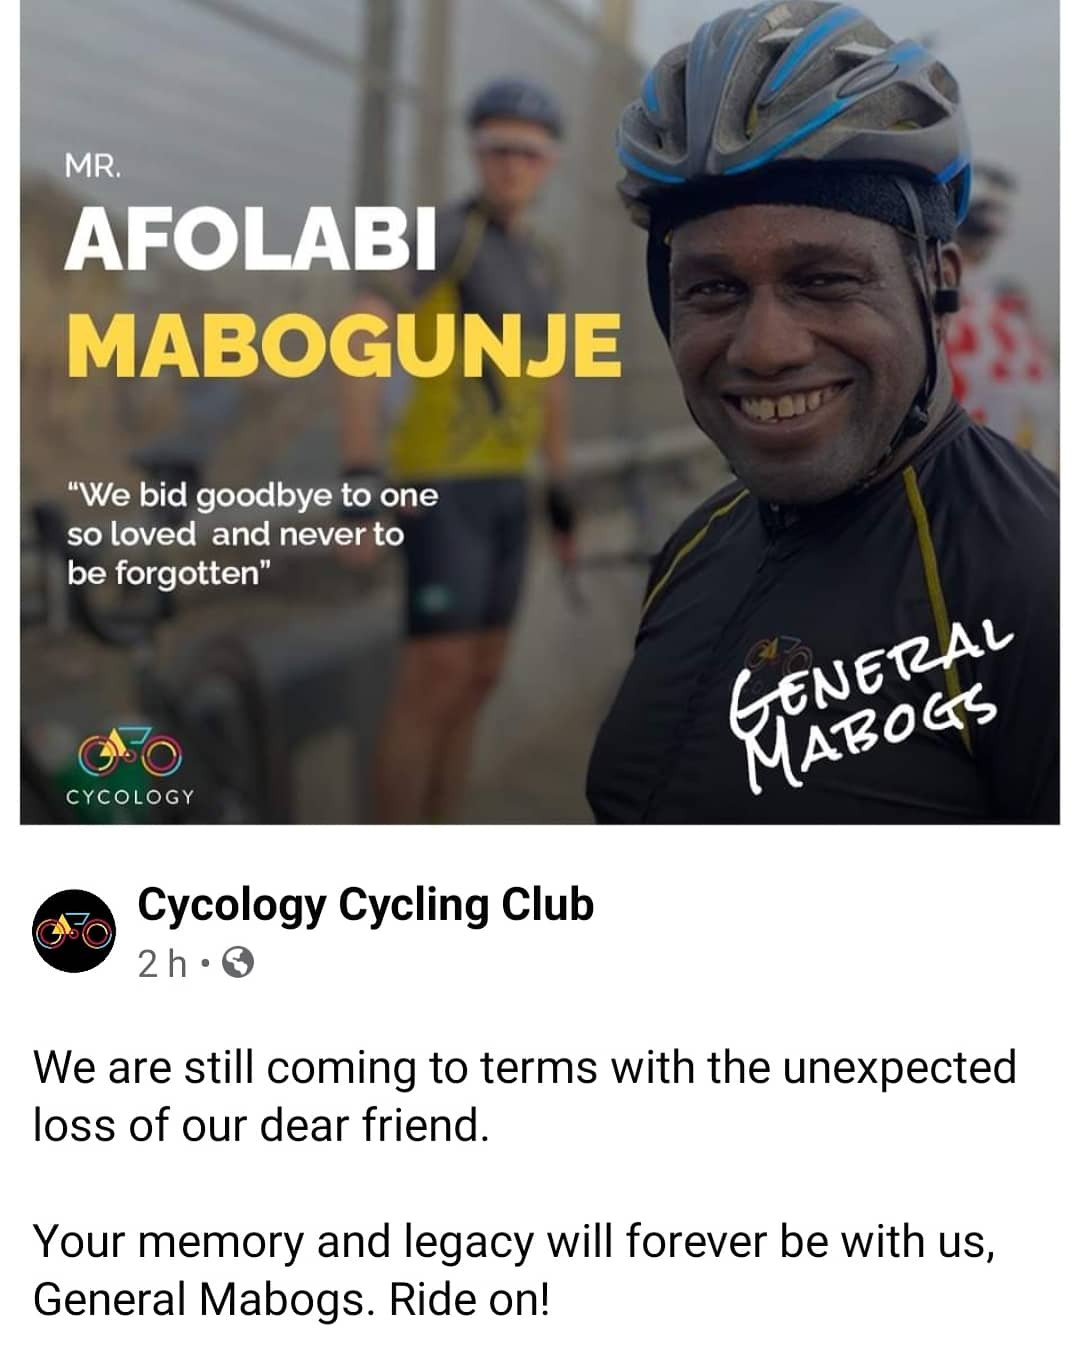 Nigerian Cyclist dies days after being stabbed by armed robbers while waiting for other cyclists